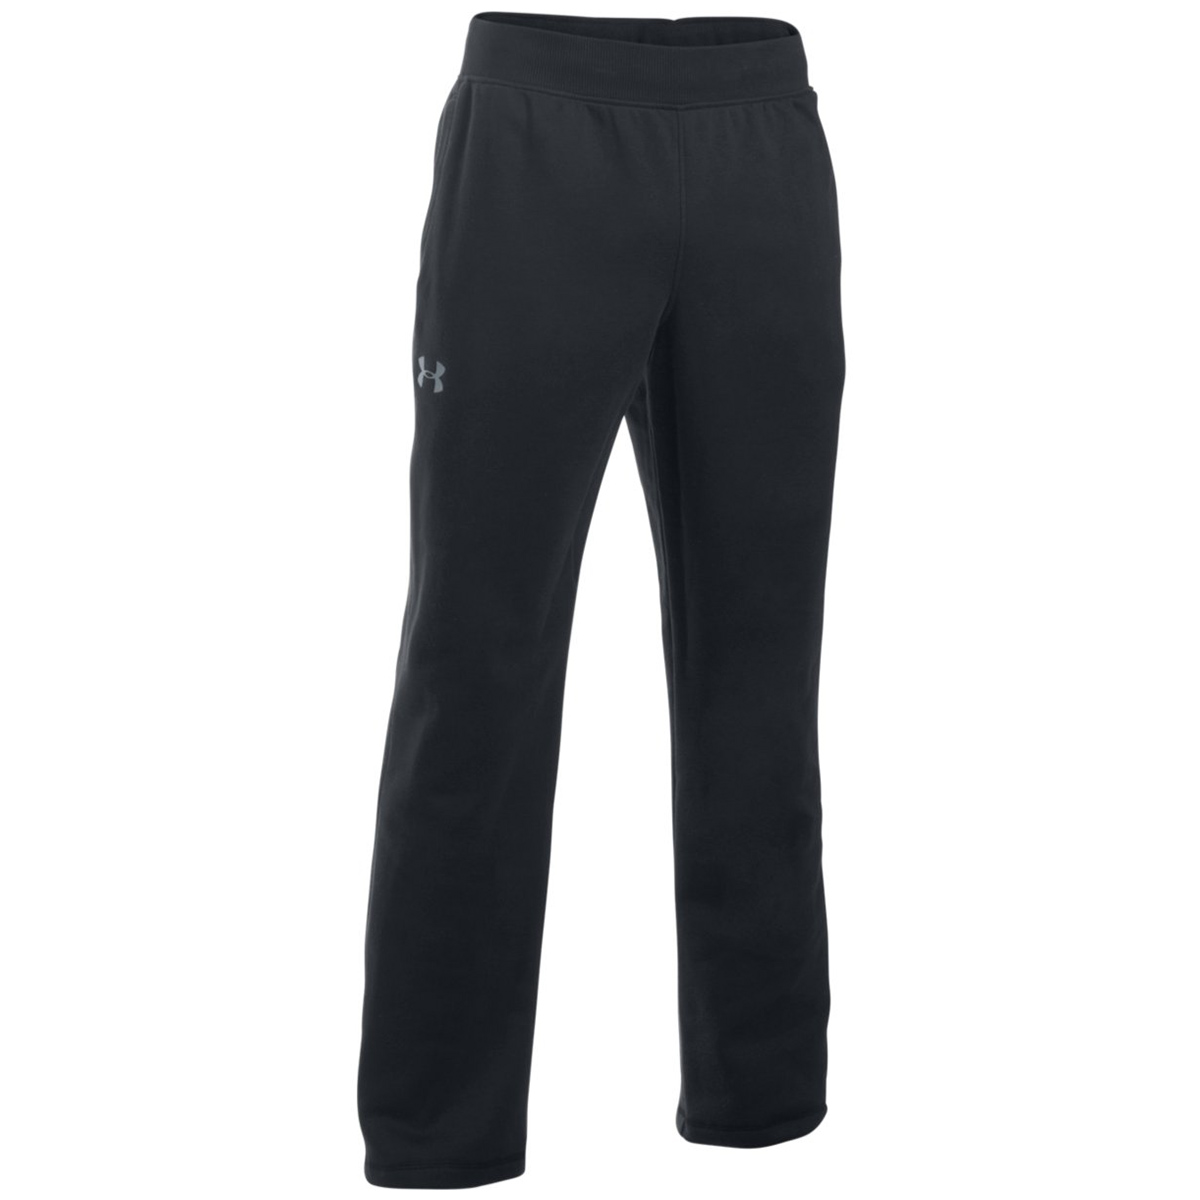 Under-Armour-2017-Mens-Storm-Rival-Cotton-Pant-Training-Jogging-Gym-Bottoms